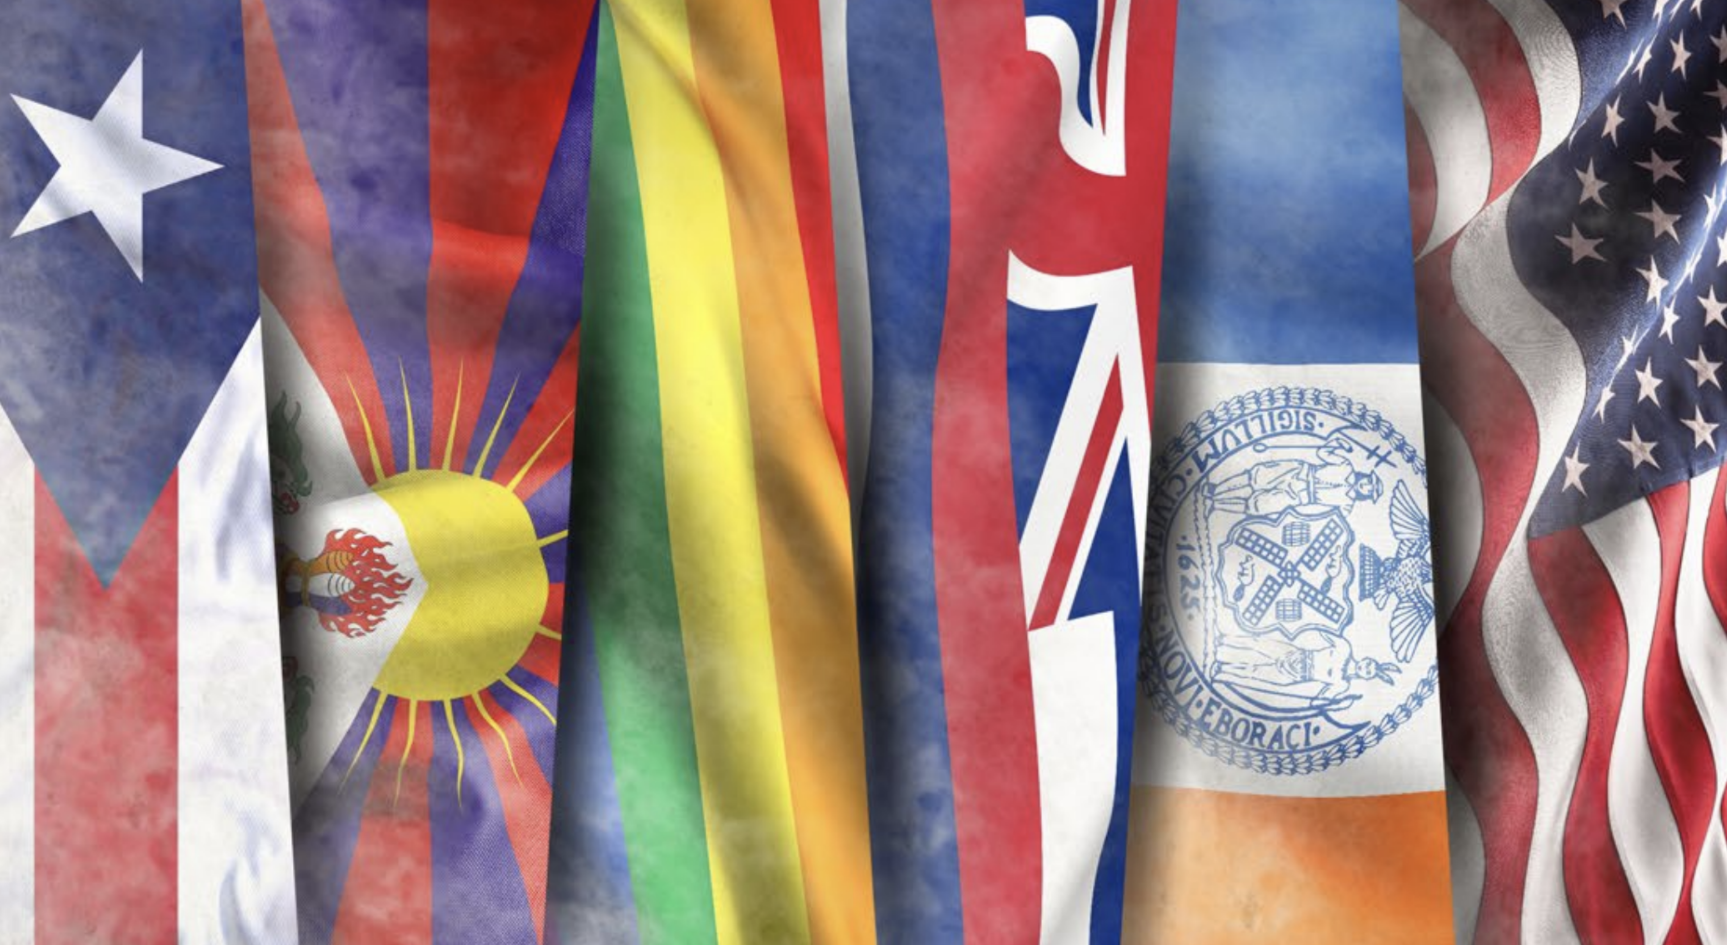 symbols and flags